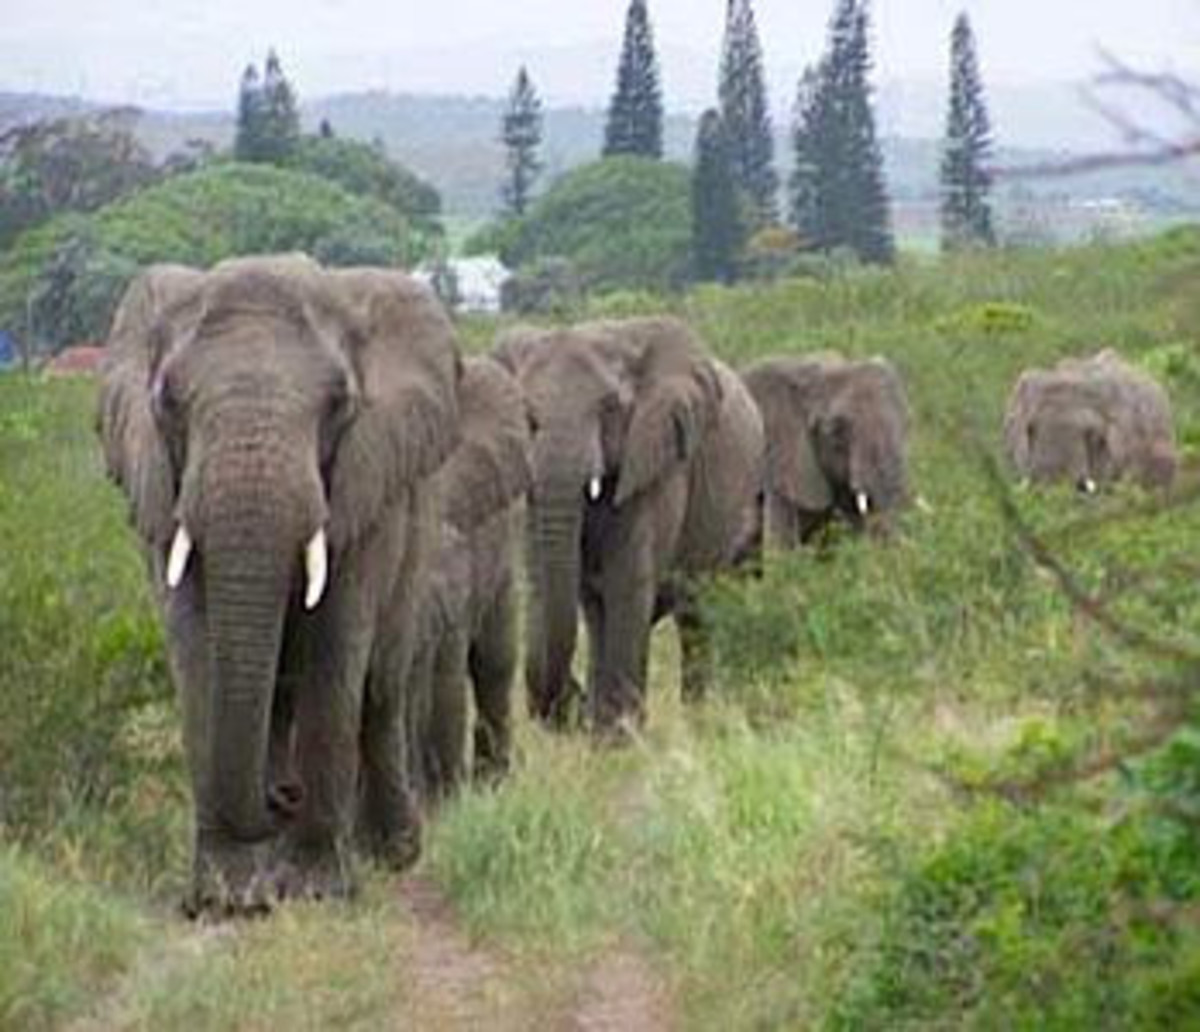 The Elephants returning to the Anthony home to pay homage to the human they loved.